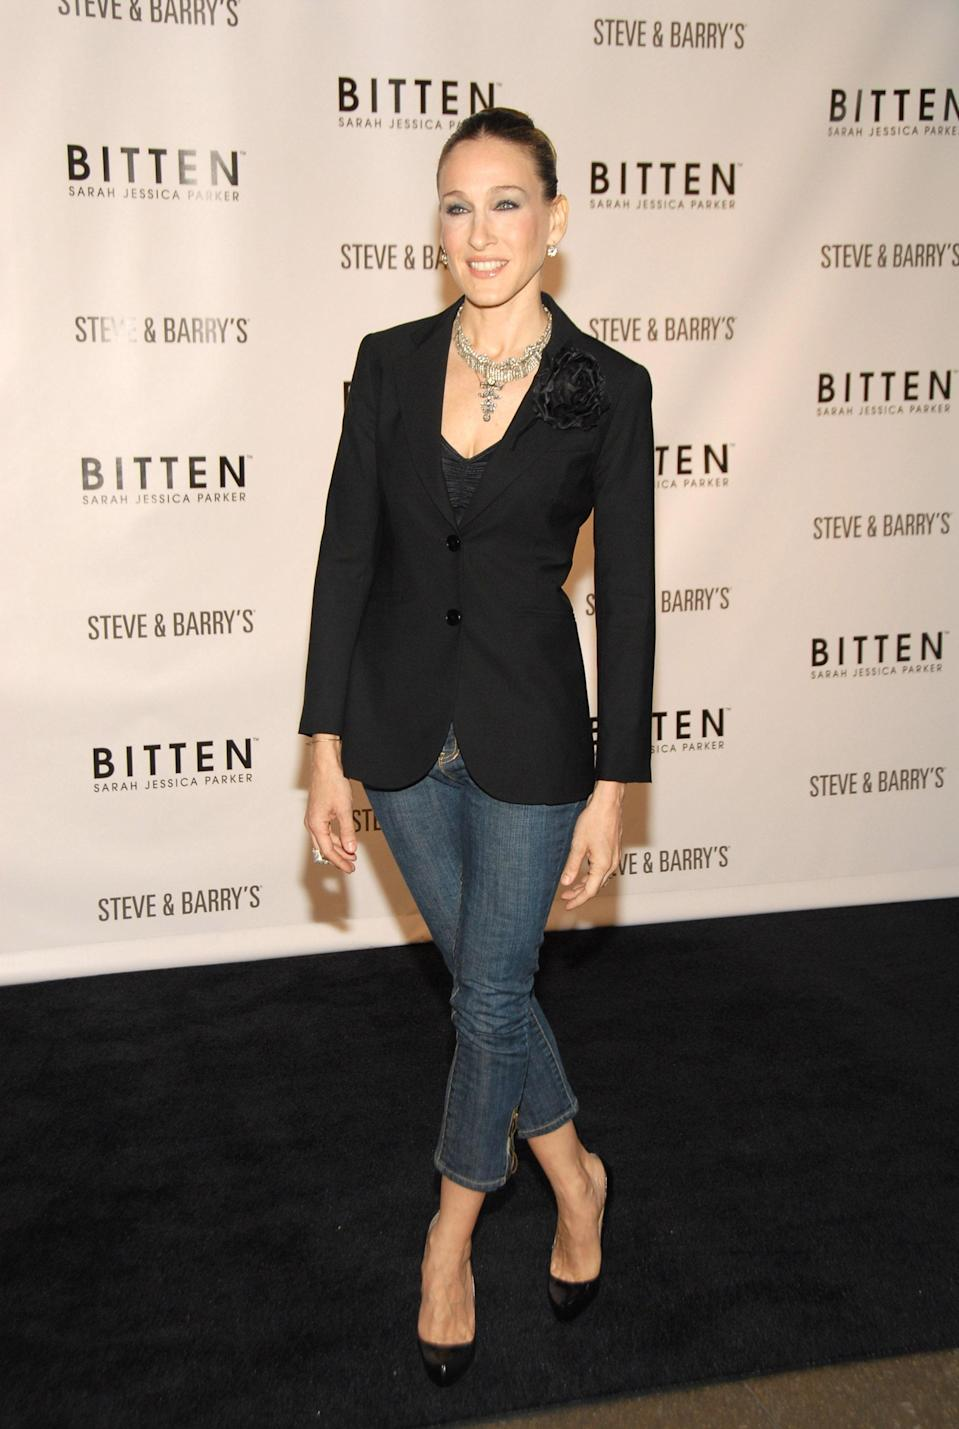 Having gained fame as Carrie Bradshaw on <em>Sex and The City</em>, Sarah Jessica Parker has partaken in many fashion ventures since the show ended (notably her successful shoe line titled SJP). But back in 2007, the actor and entrepreneur launched Bitten, an affordable line of women's apparel sold exclusively at Steve & Barry stores. It folded in 2008, when the retailer closed its doors.